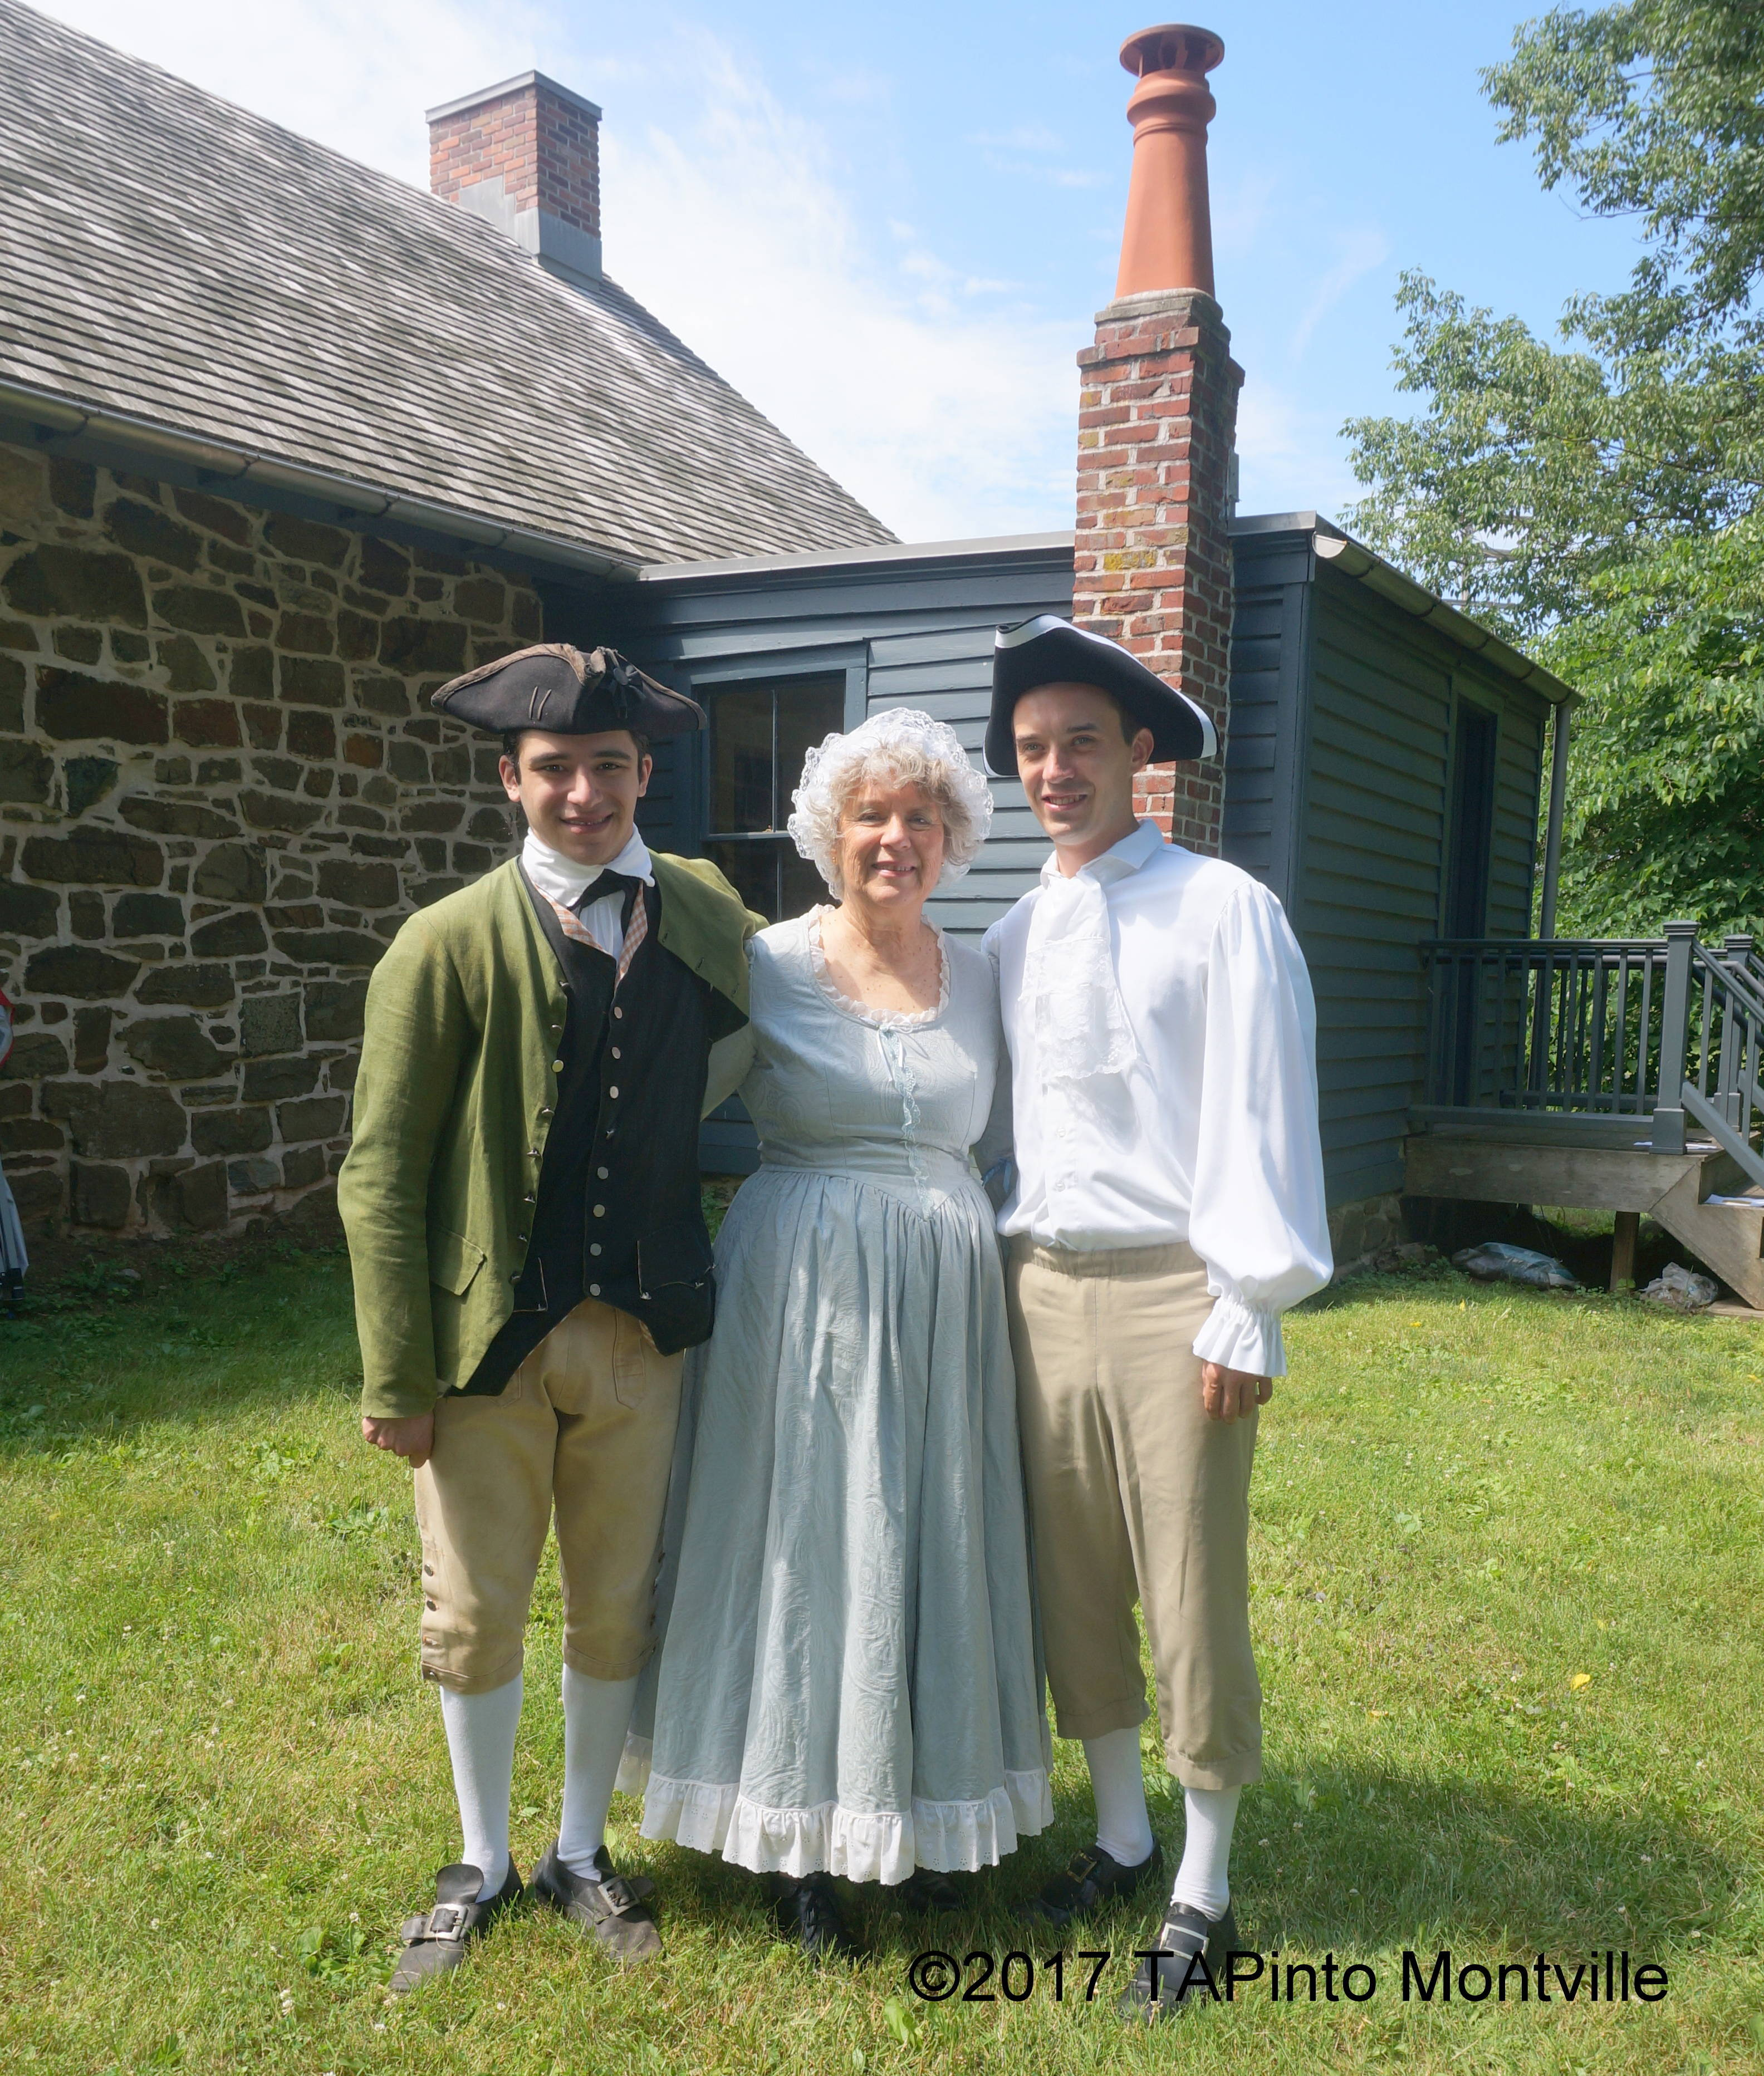 eadabce48080d419b49a_a_Alex_Pena__Geri_Van_Dyke_and_Hank_Lyon_stand_behind_the_Doremus_House.JPG